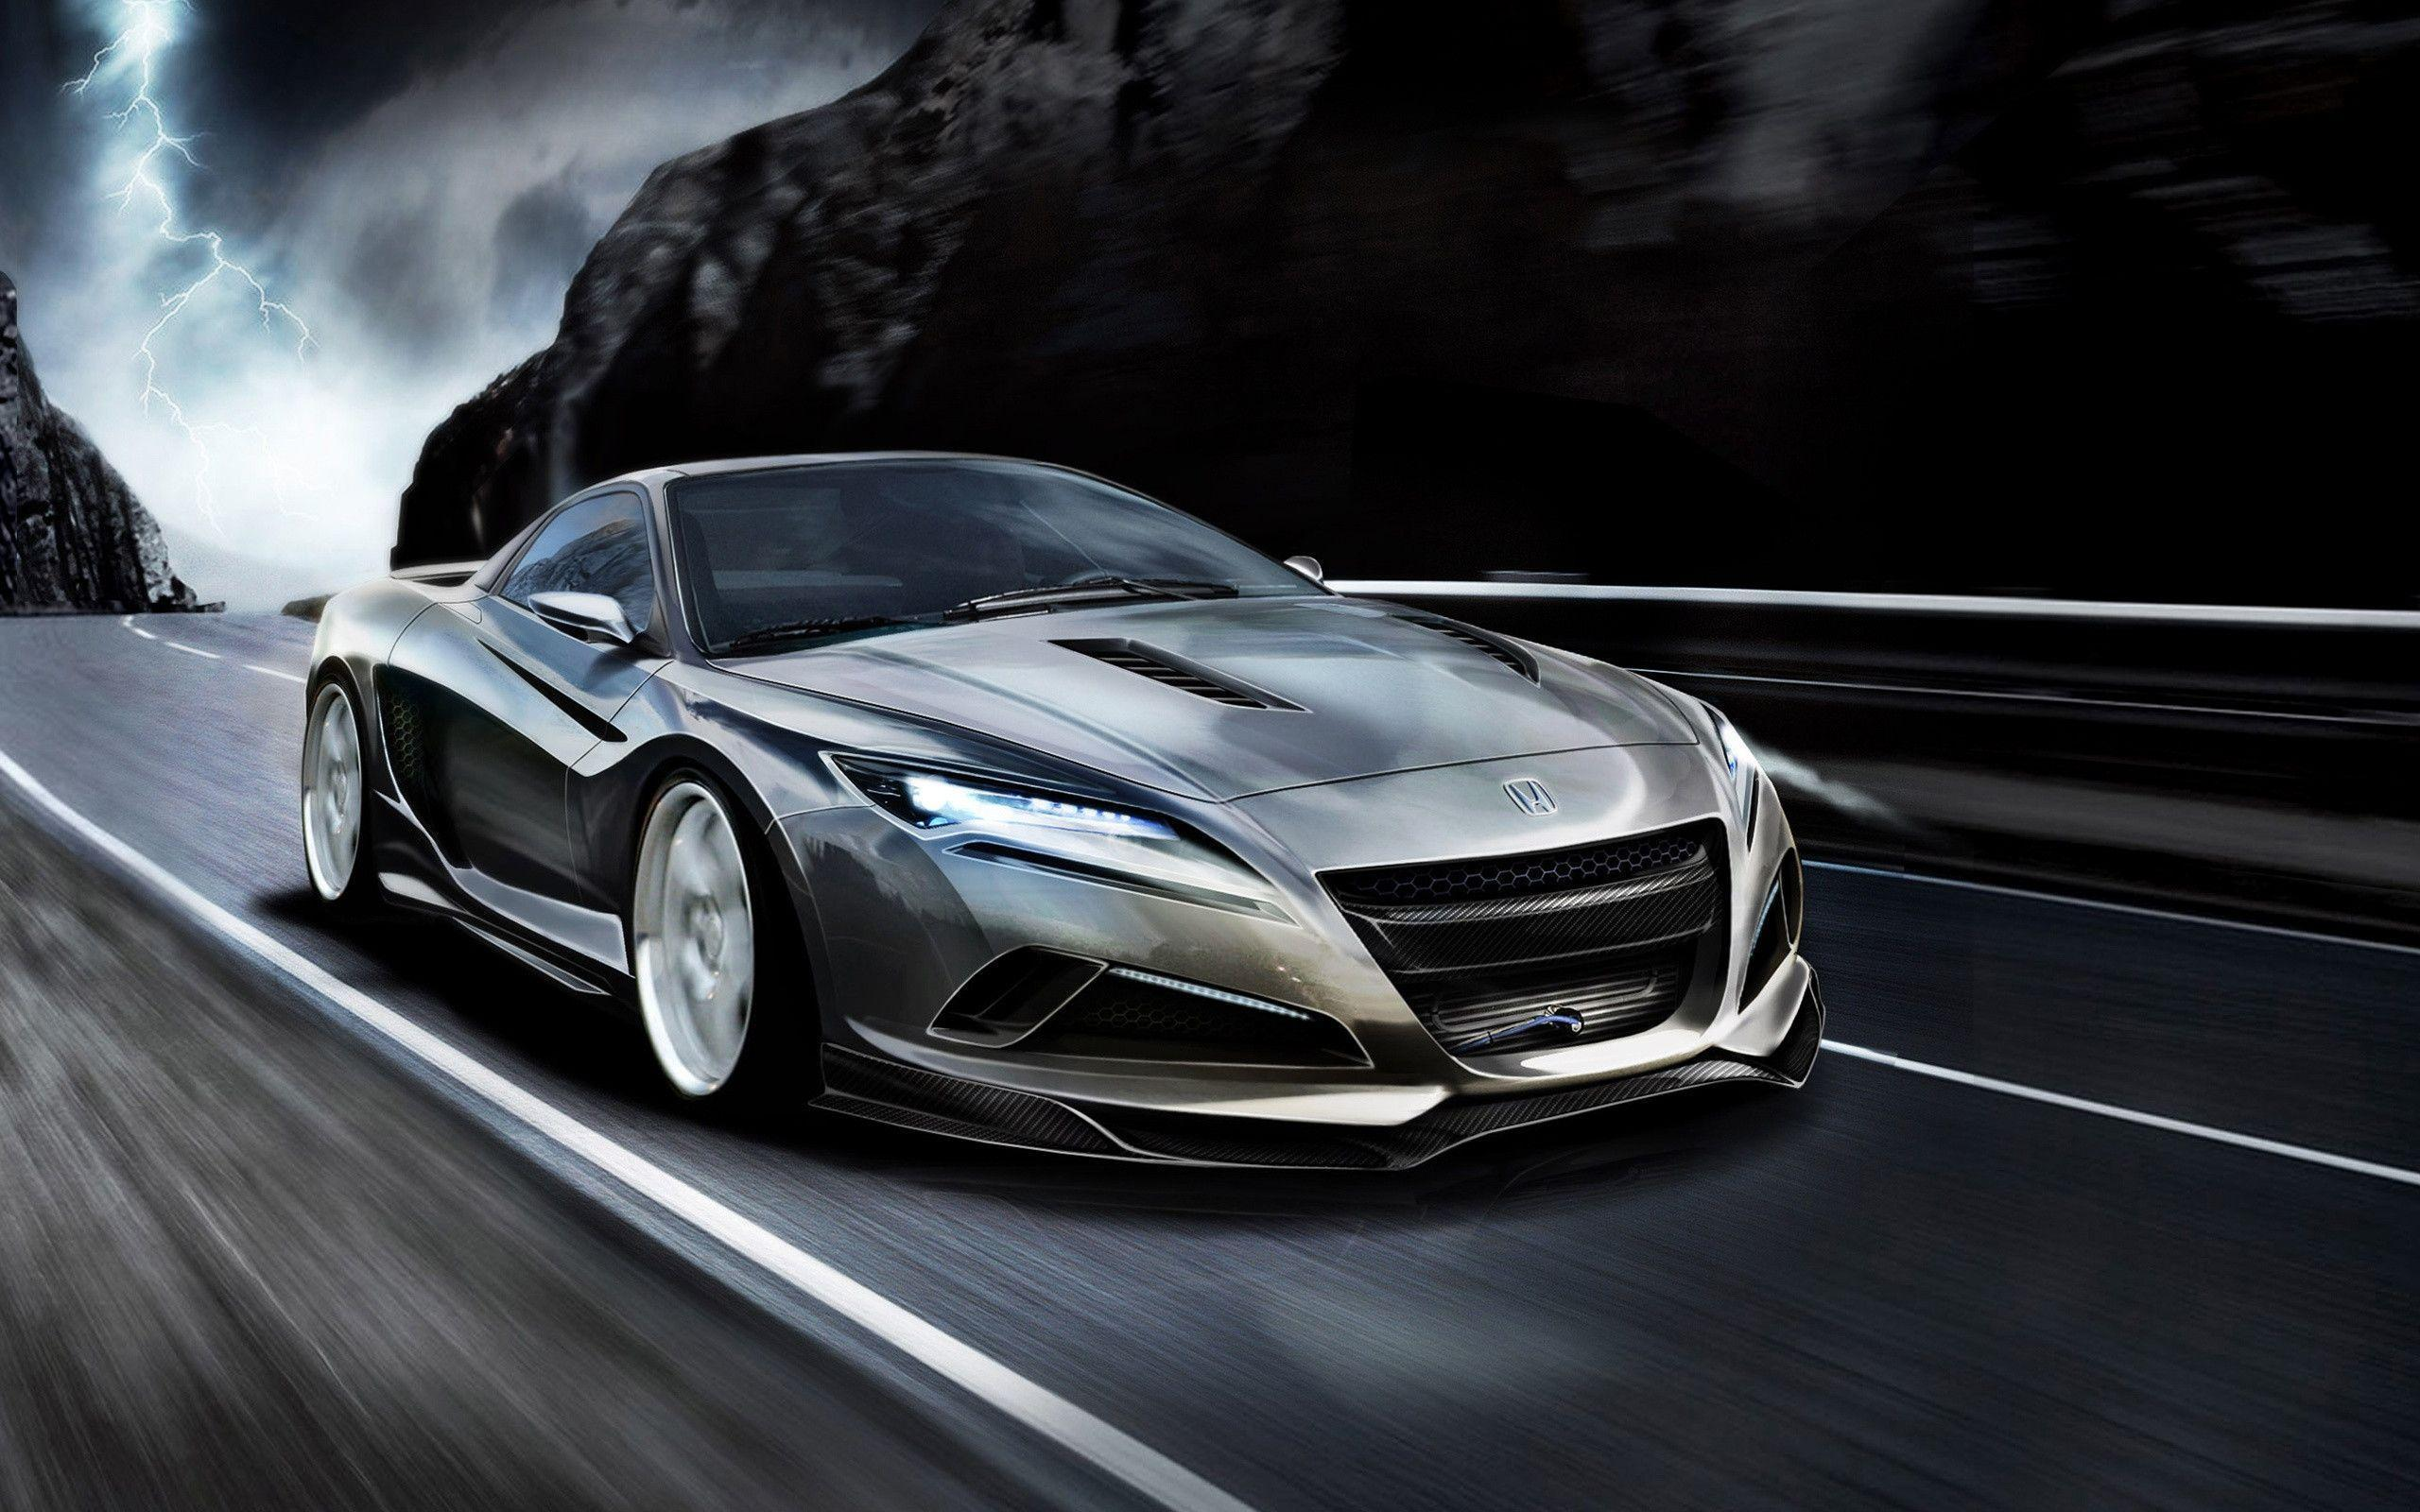 Supercars HD Wallpapers 2560x1600